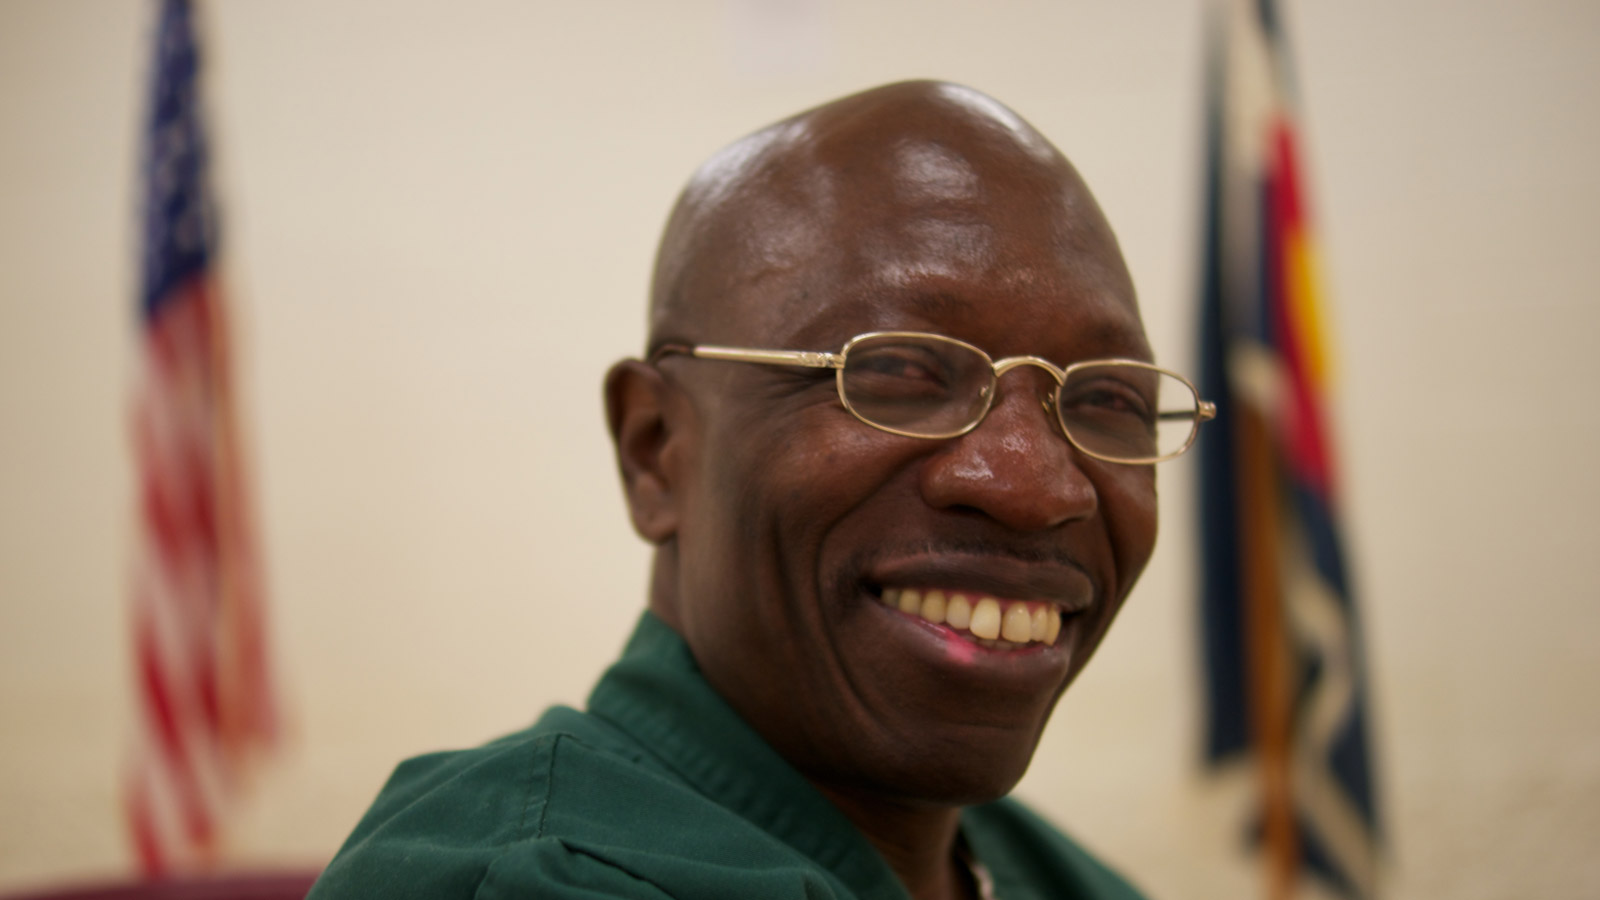 Clarence Moses-EL (credit: Colorado Independent)